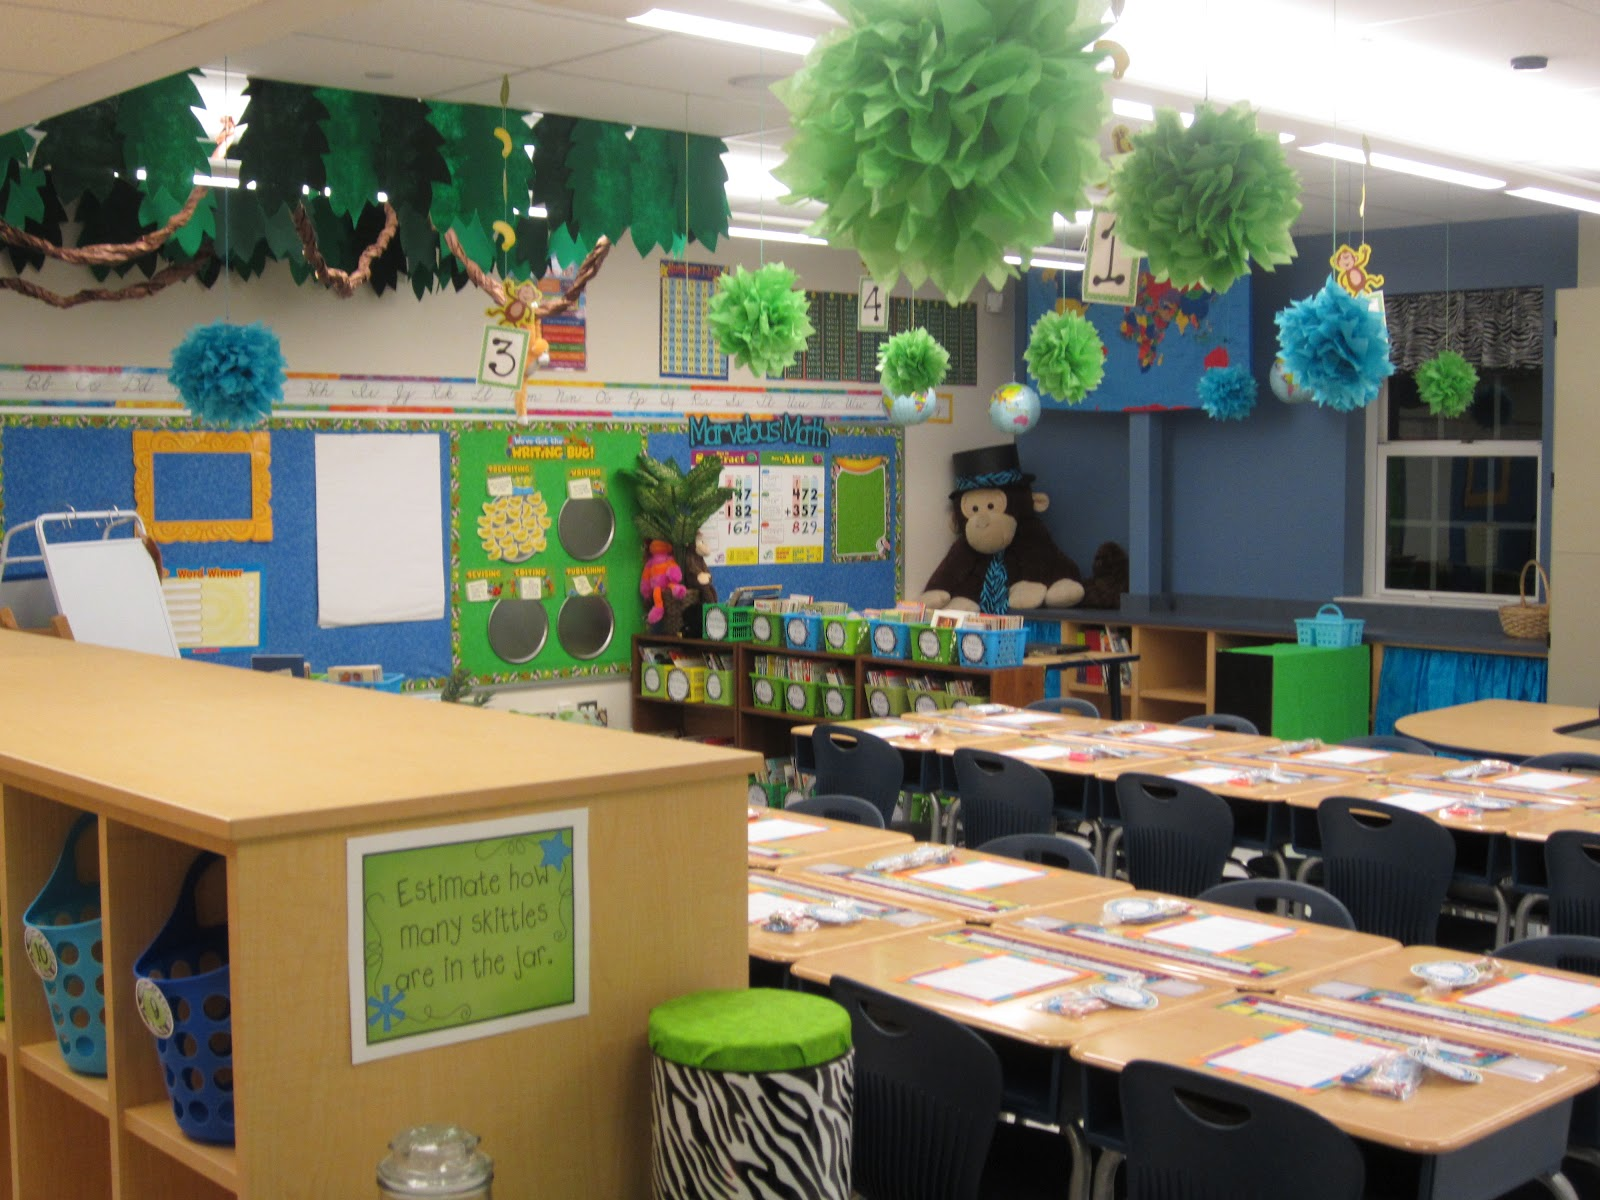 Unique Classroom Design Ideas ~ The creative chalkboard classroom tour pictures galore